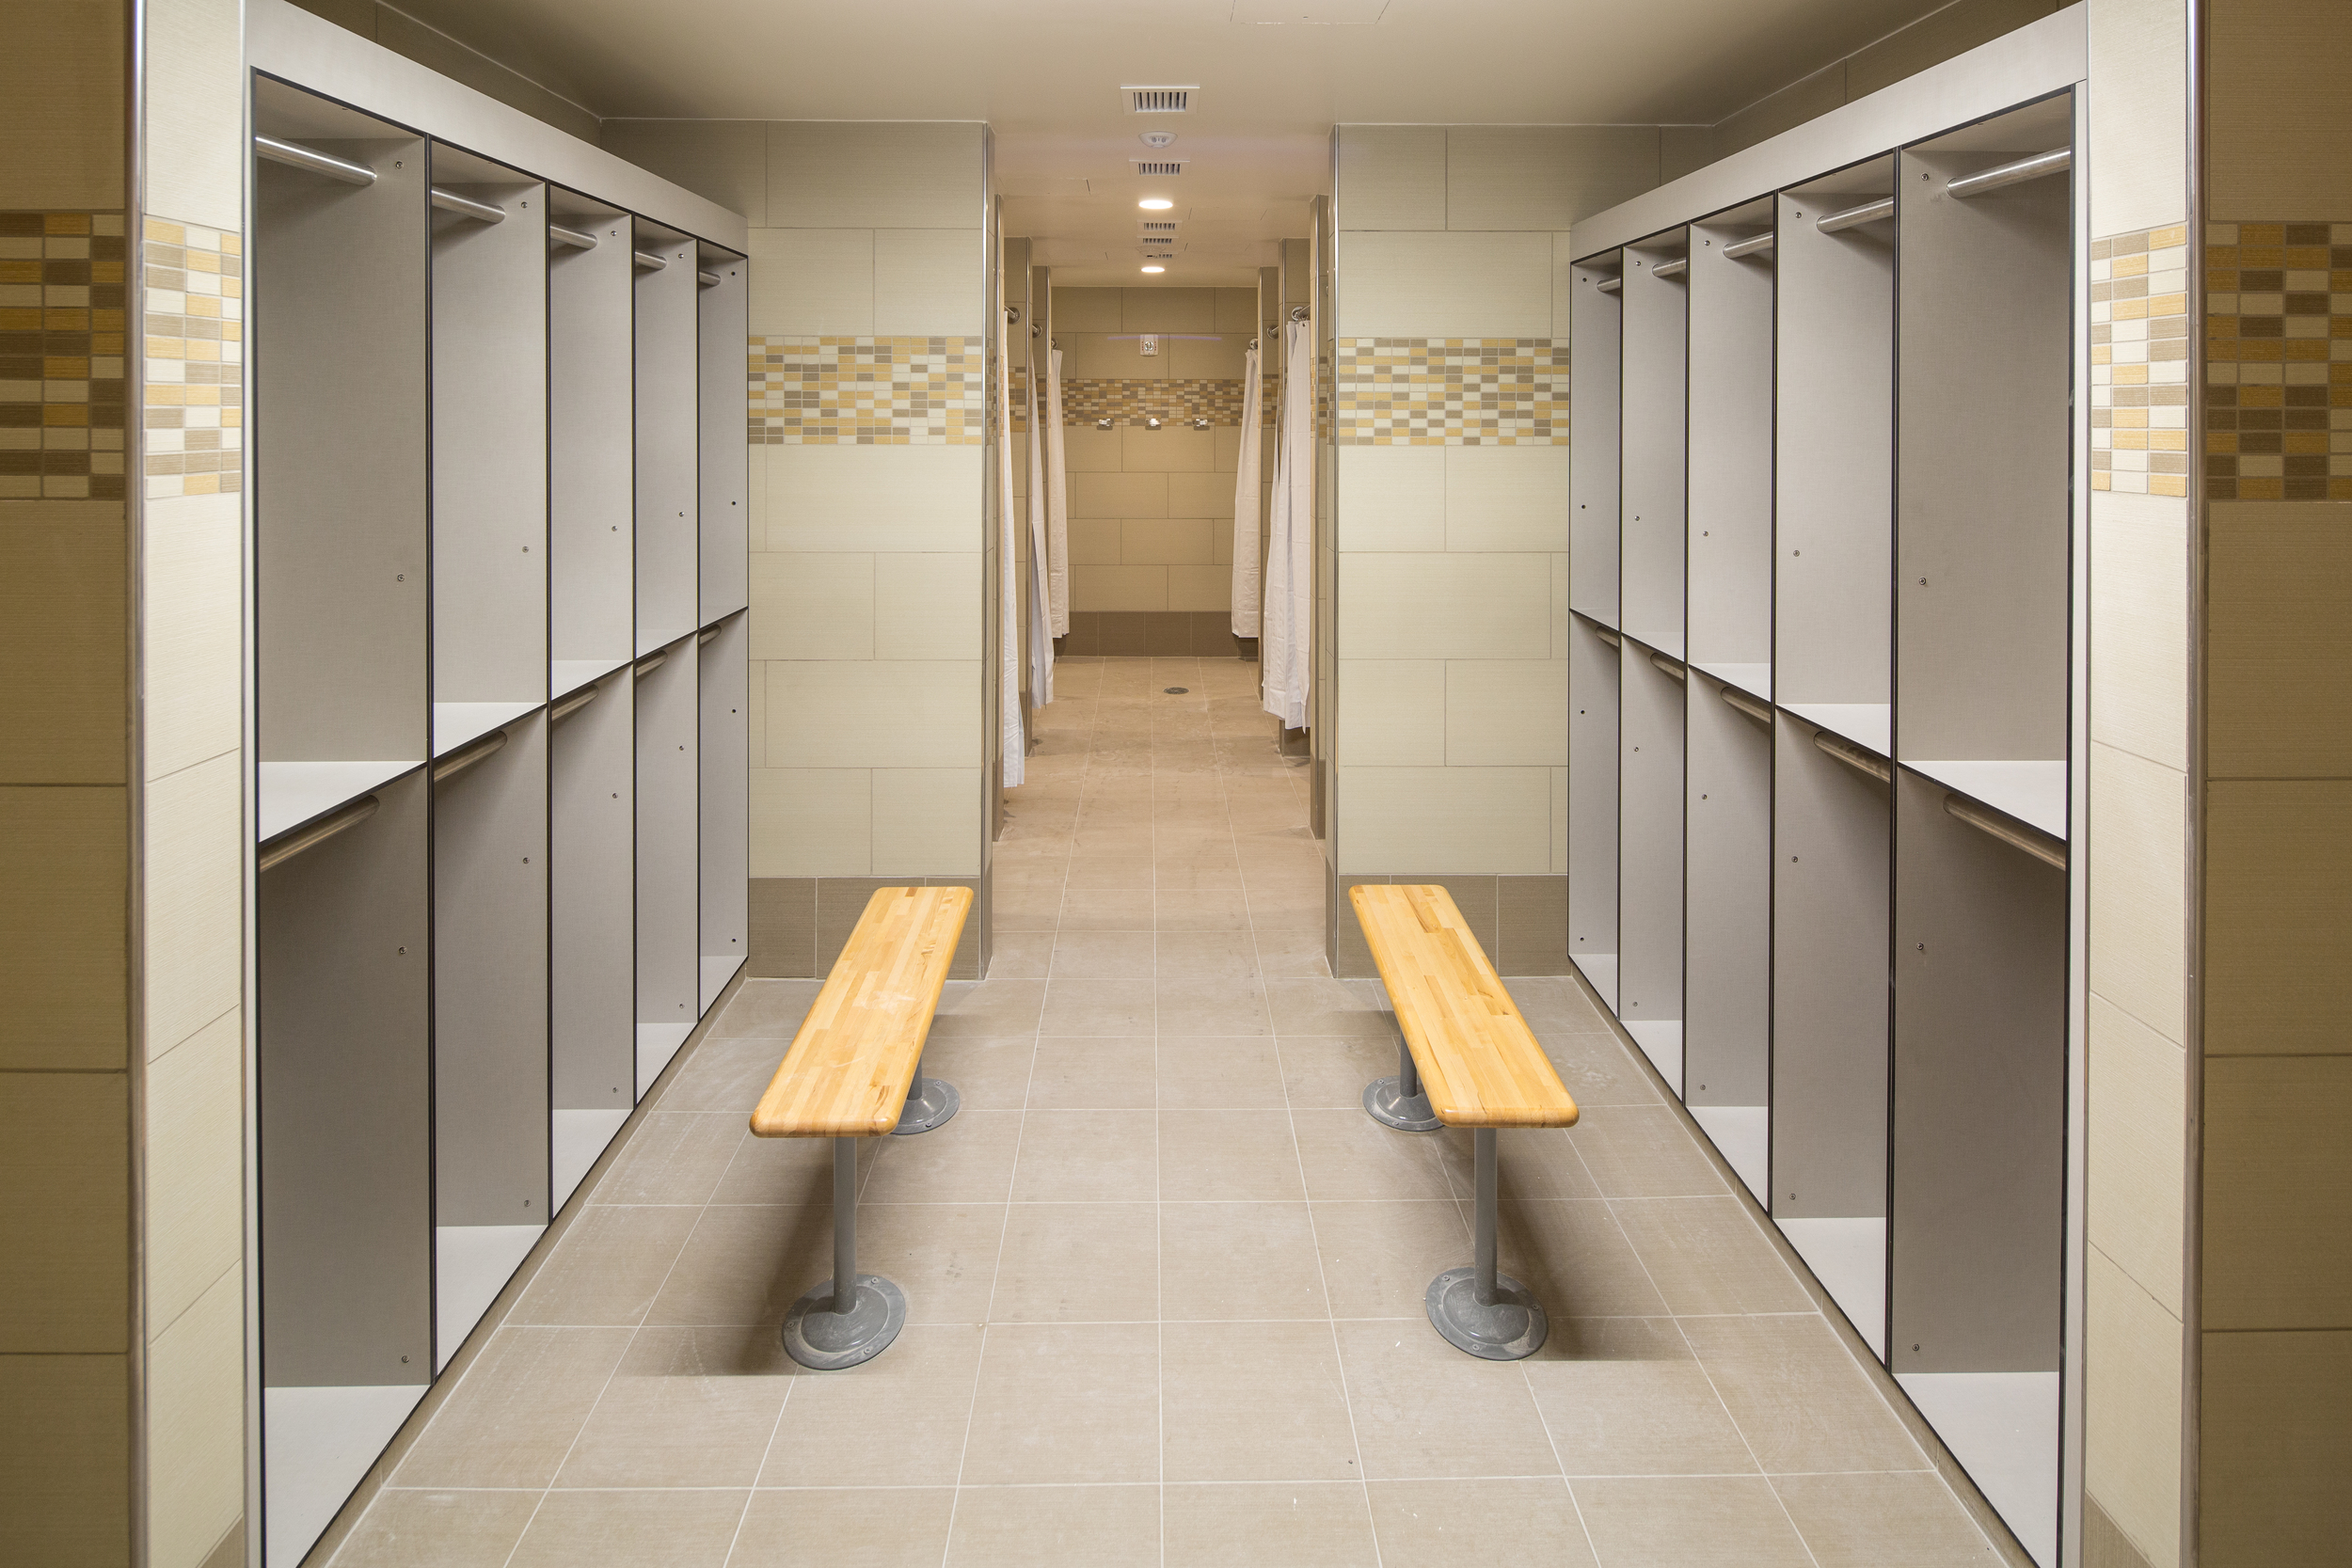 VM 27-15 Kokolakis_West Point_MacShort_bathrooms_0019.jpg